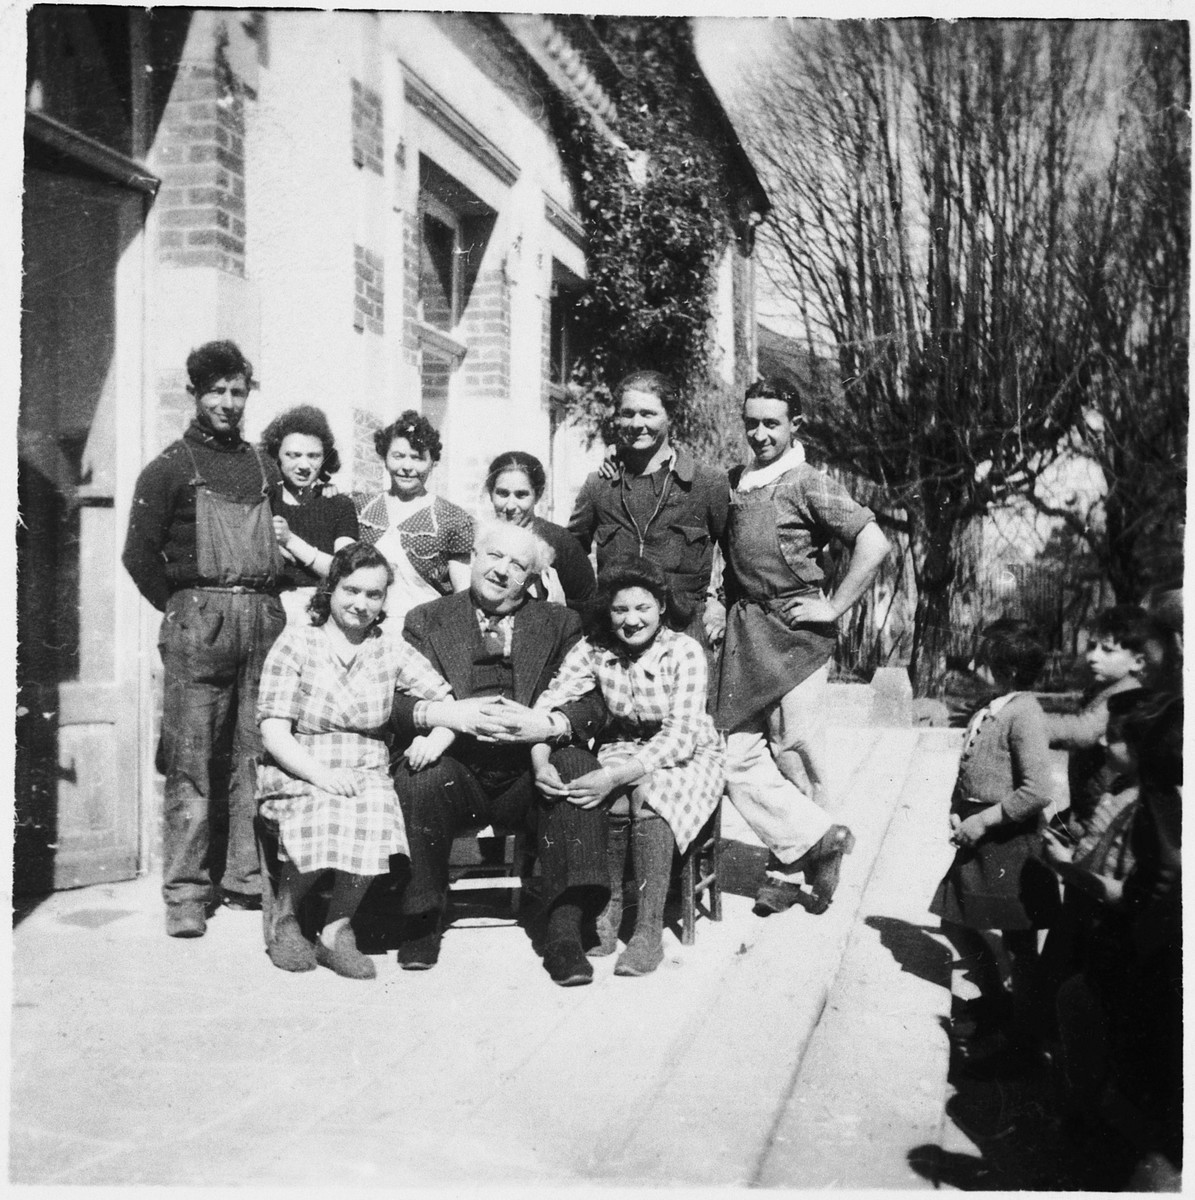 Group portrait of the support and technical staff of the Chabannes OSE [Oeuvre de Secours aux Enfants] children's home.   Seated in the center is the director, Felix Chevrier.  Felix Chevrier was honored as Righteous Among the Nations in 1999.